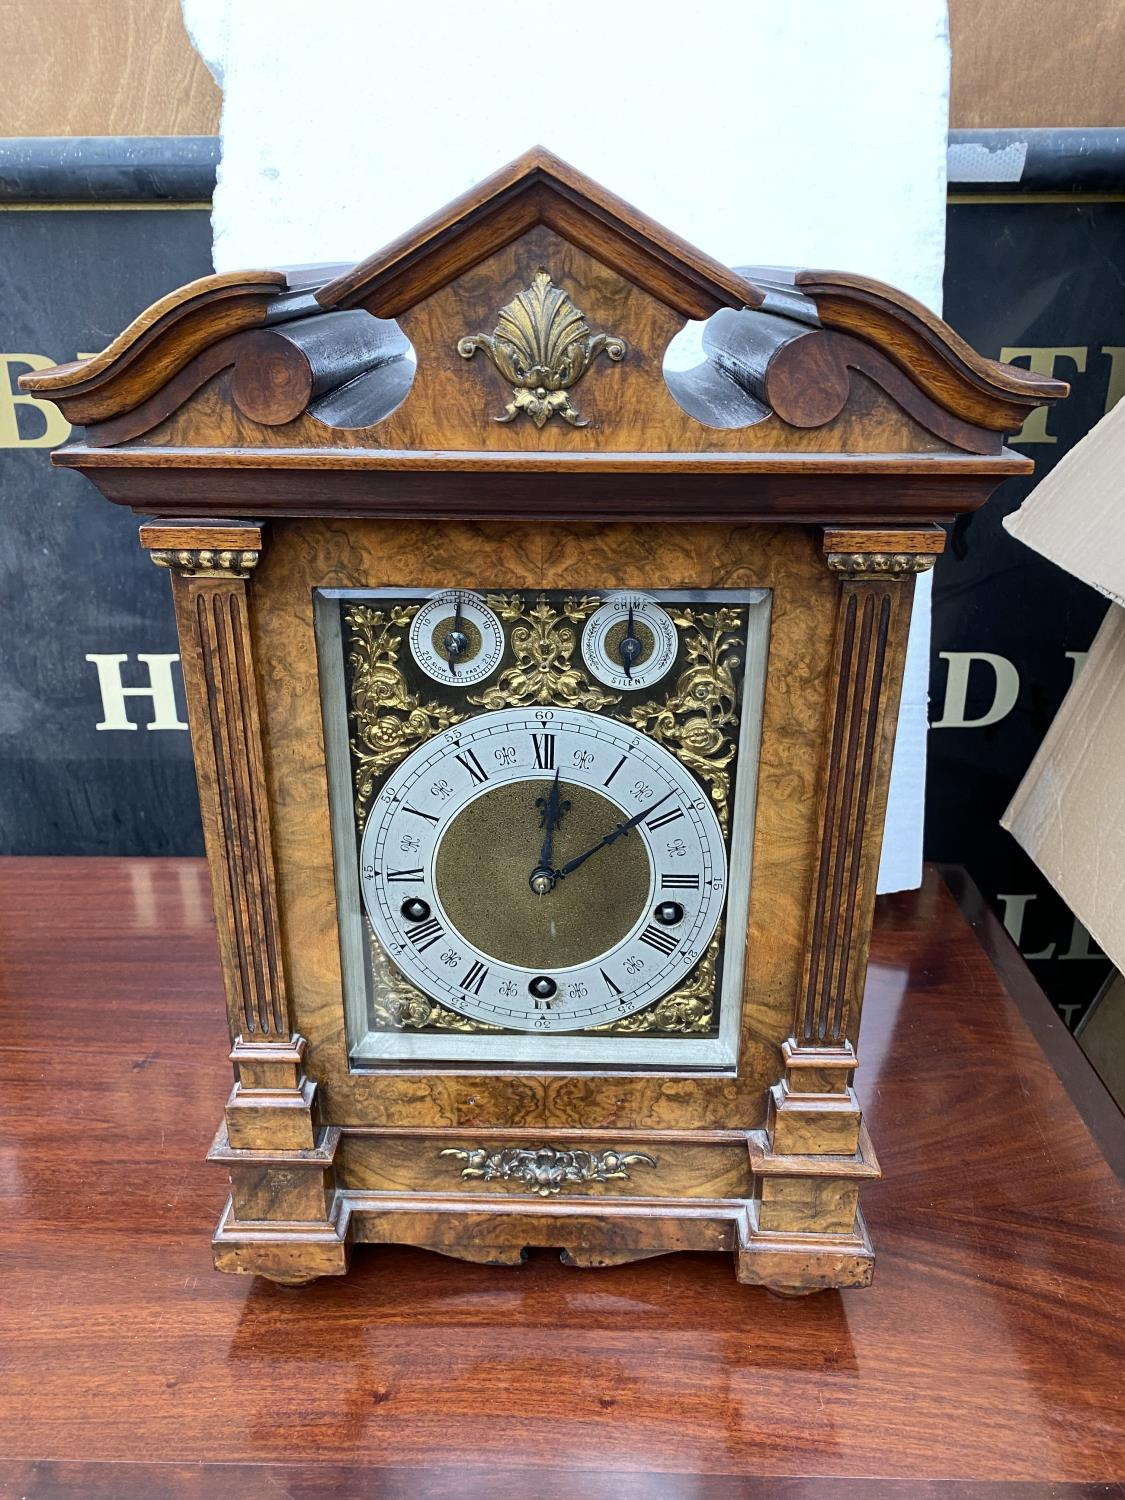 LOTS BEING ADDED DAILY - THESE PHOTOS SHOW LOTS FROM A PREVIOUS SALE - Image 7 of 14